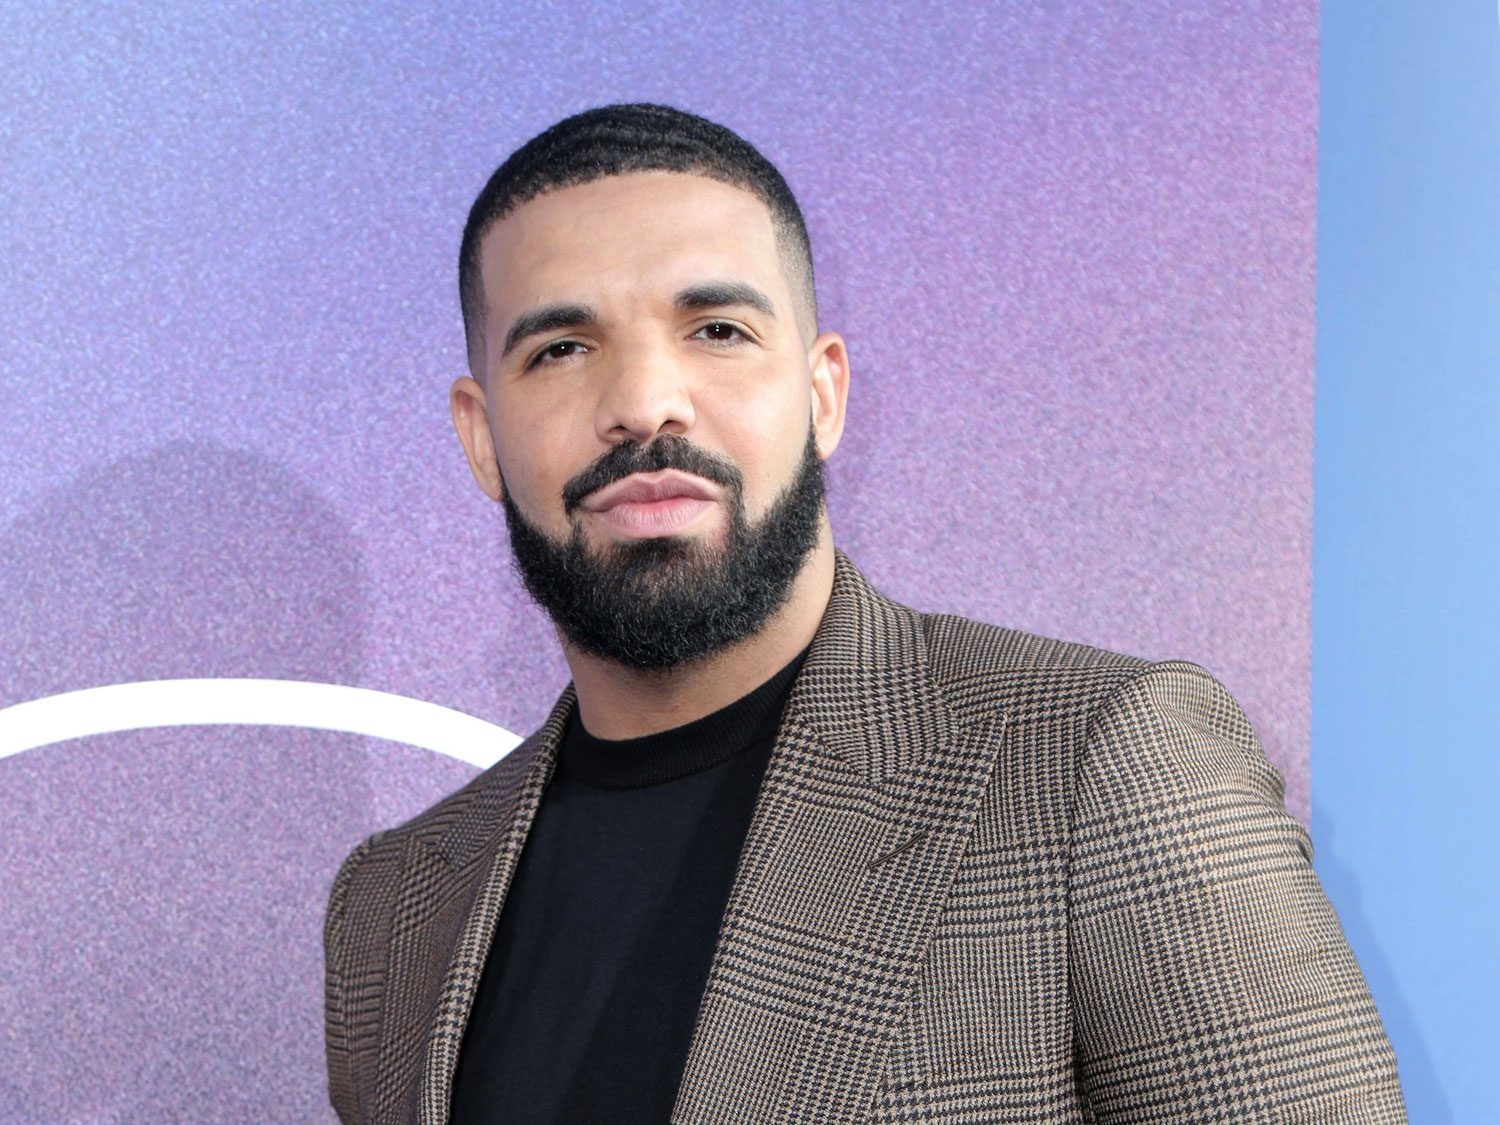 Most popular song: Drake